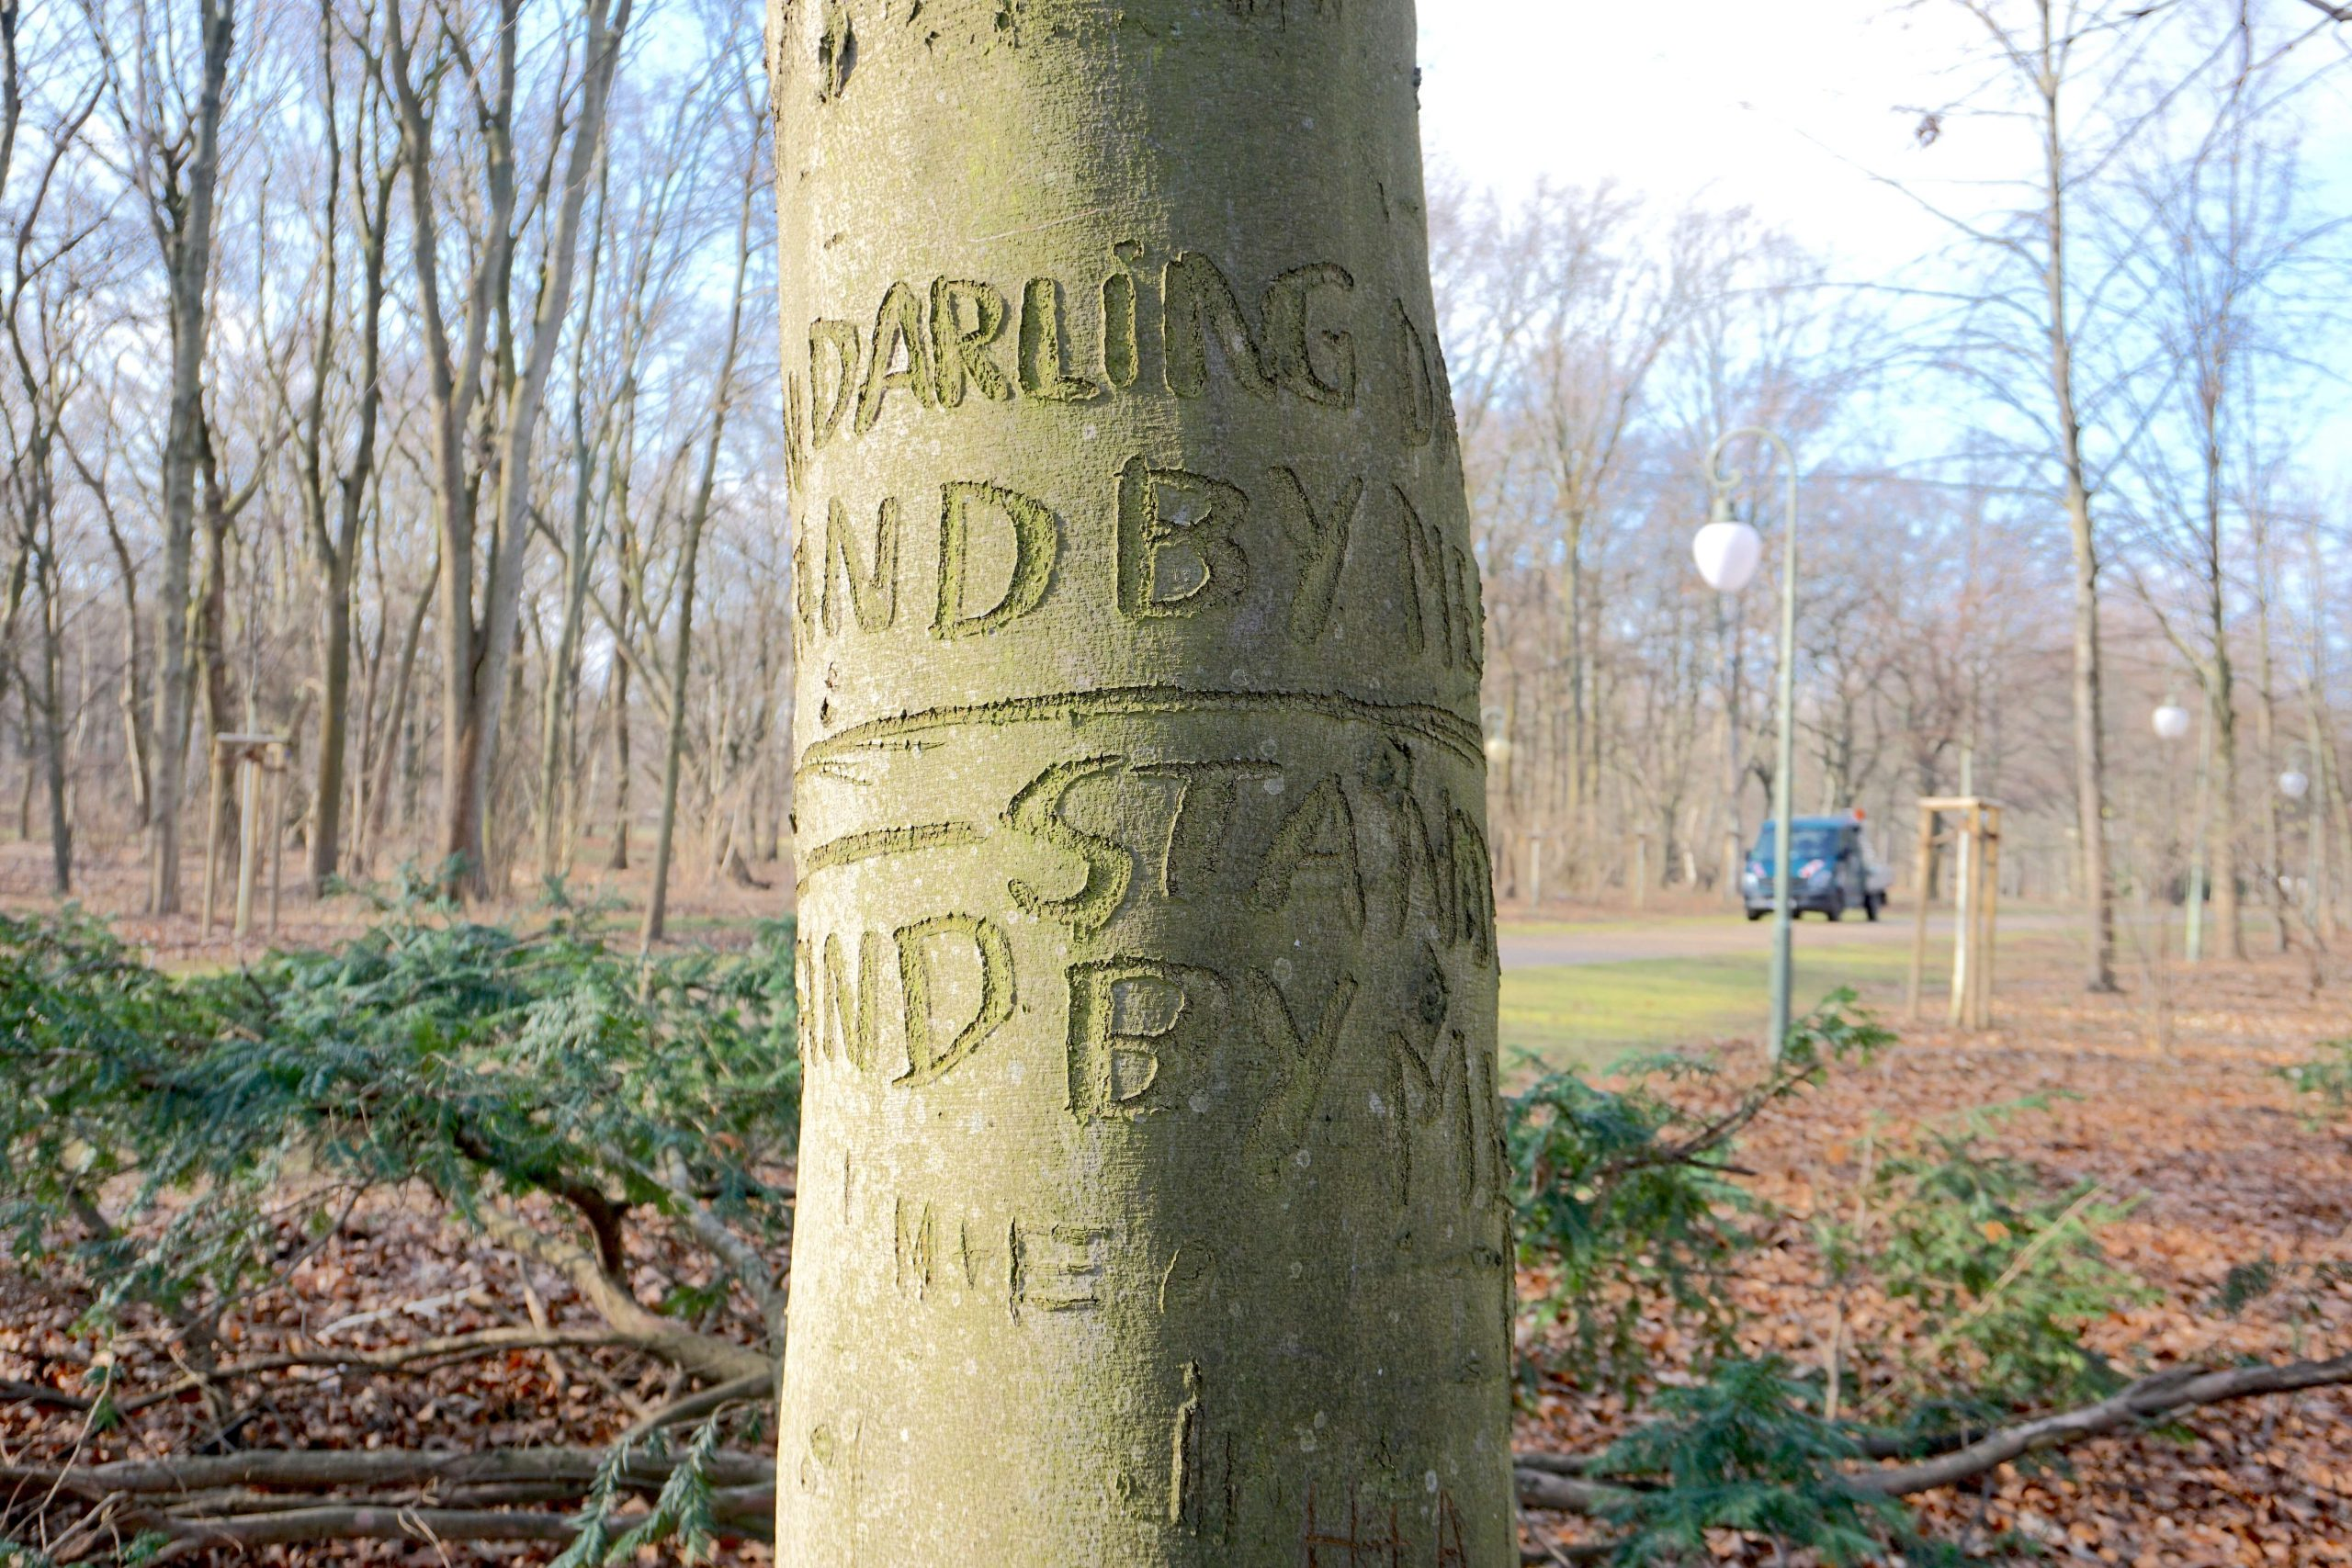 The Stand By Me Tree in Berlin - A tree with the chorus of the song Stand By Me carved into it